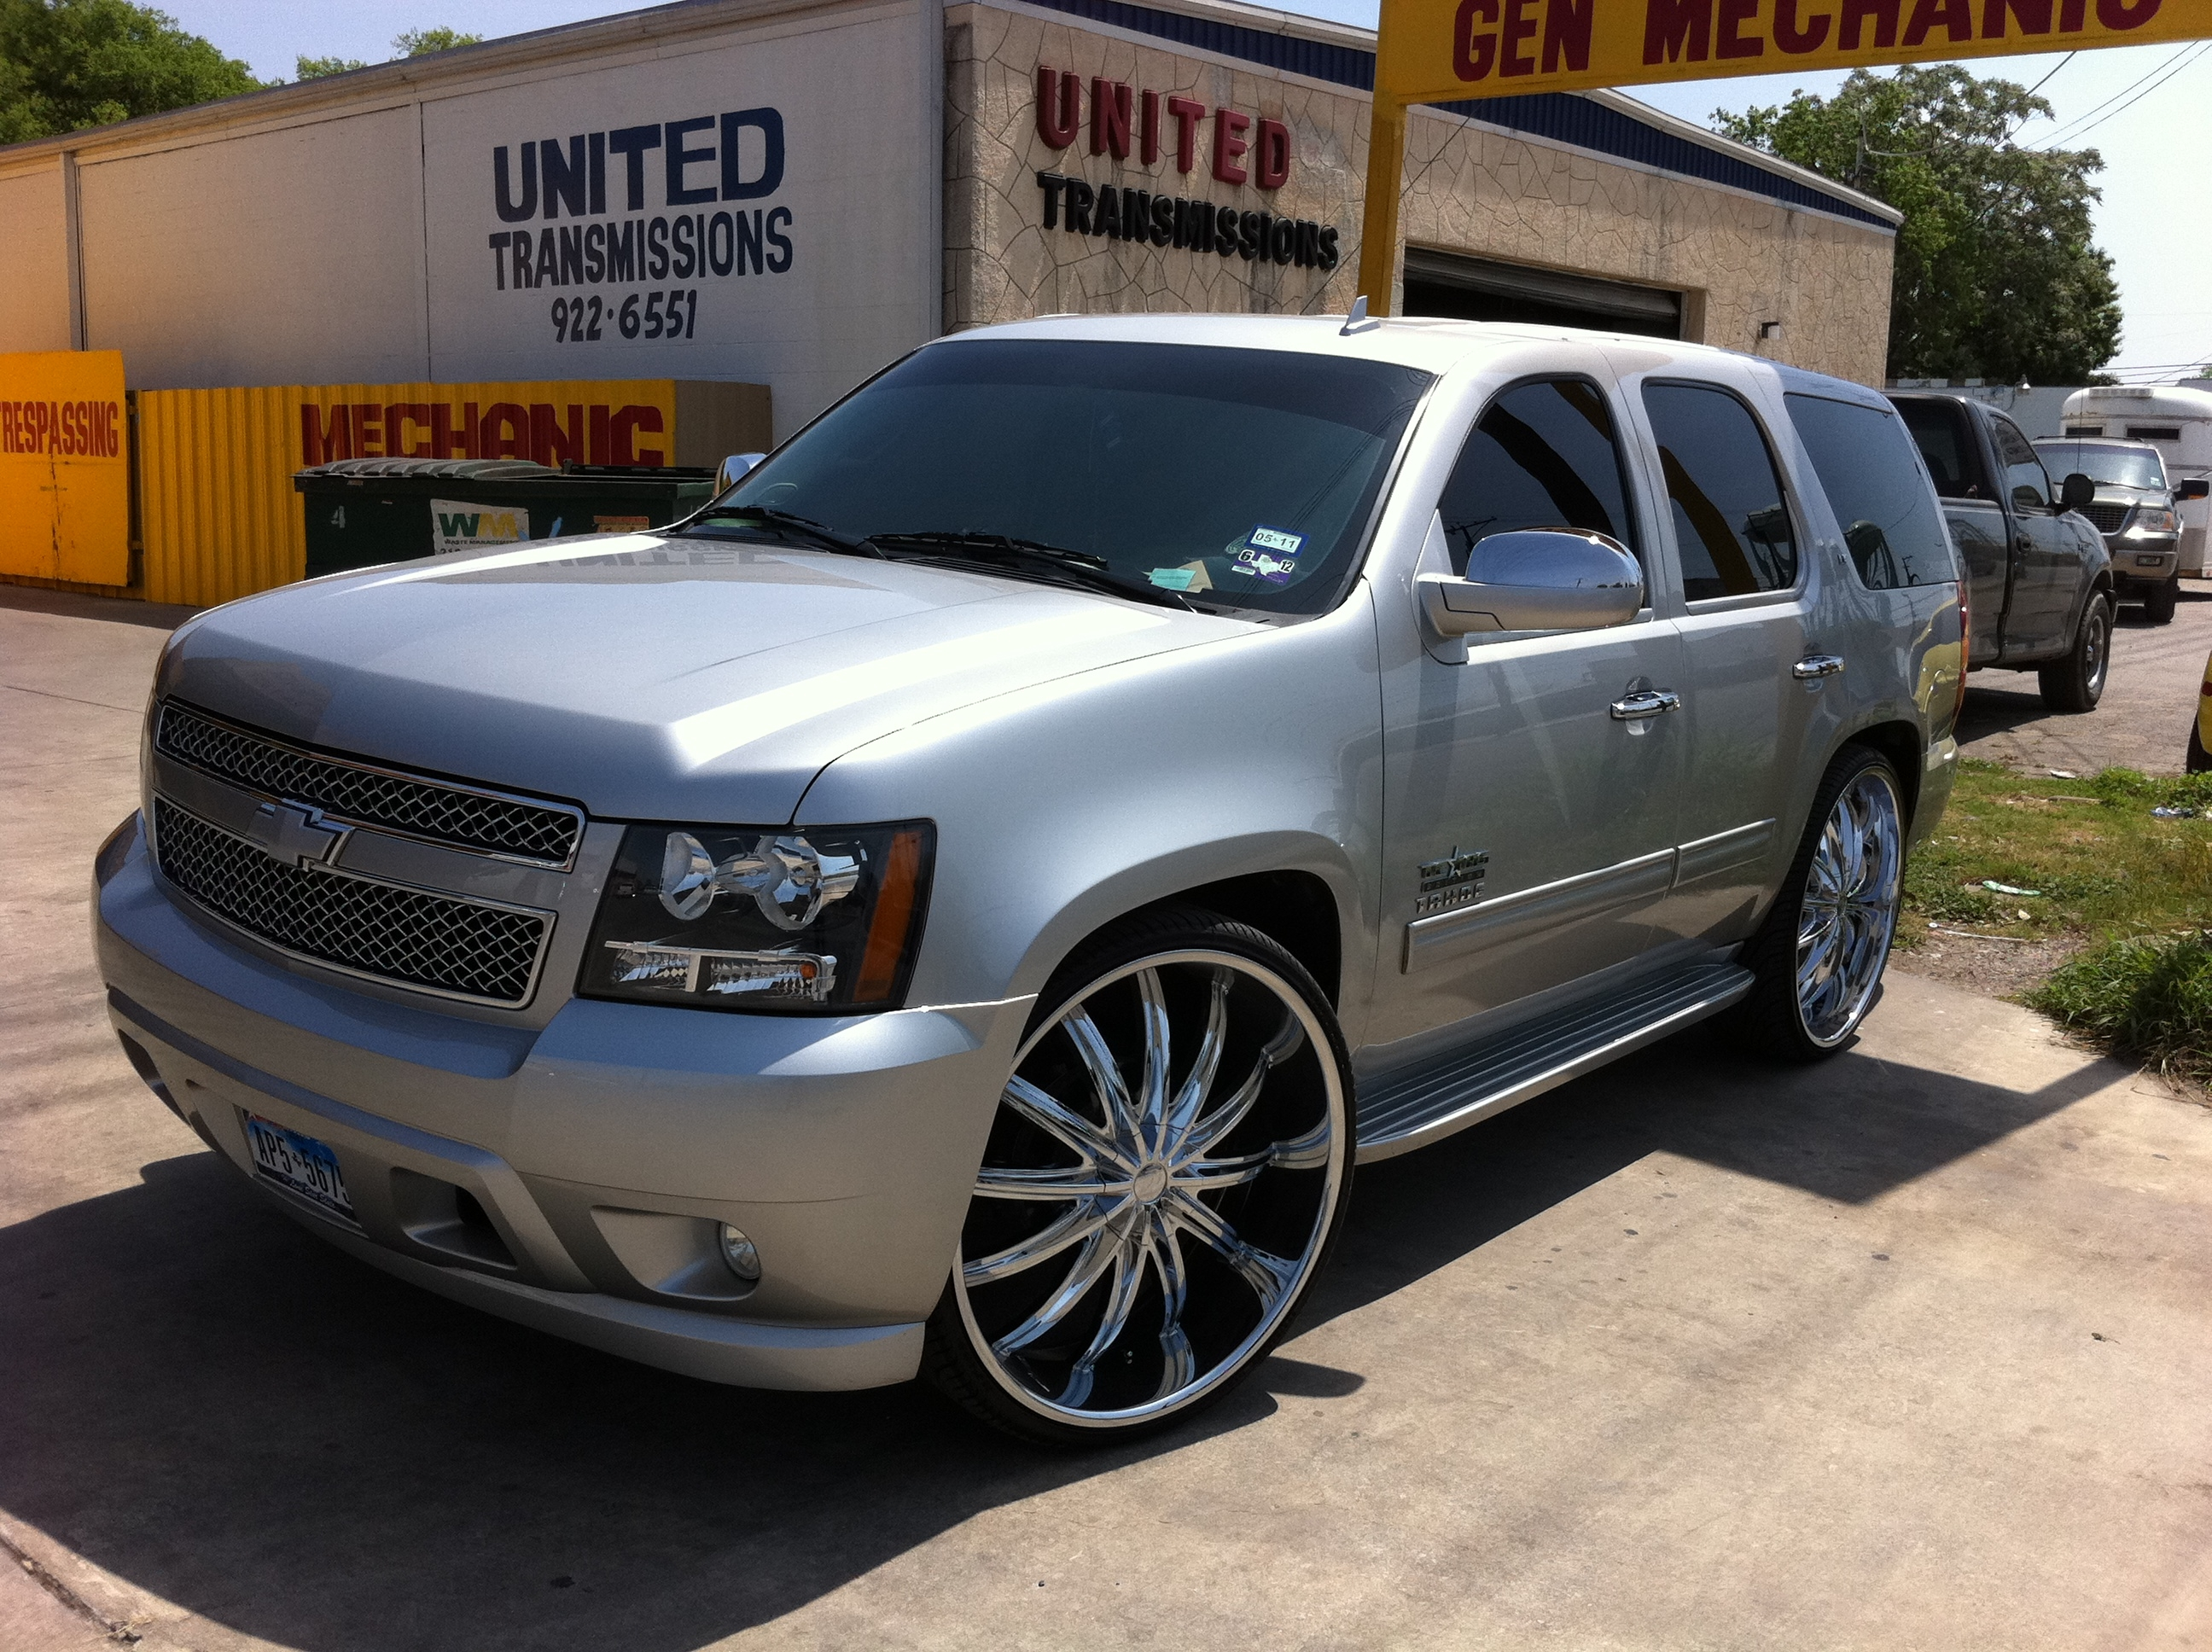 Silverado_03 2010 Chevrolet Tahoe Specs, Photos, Modification Info at ...